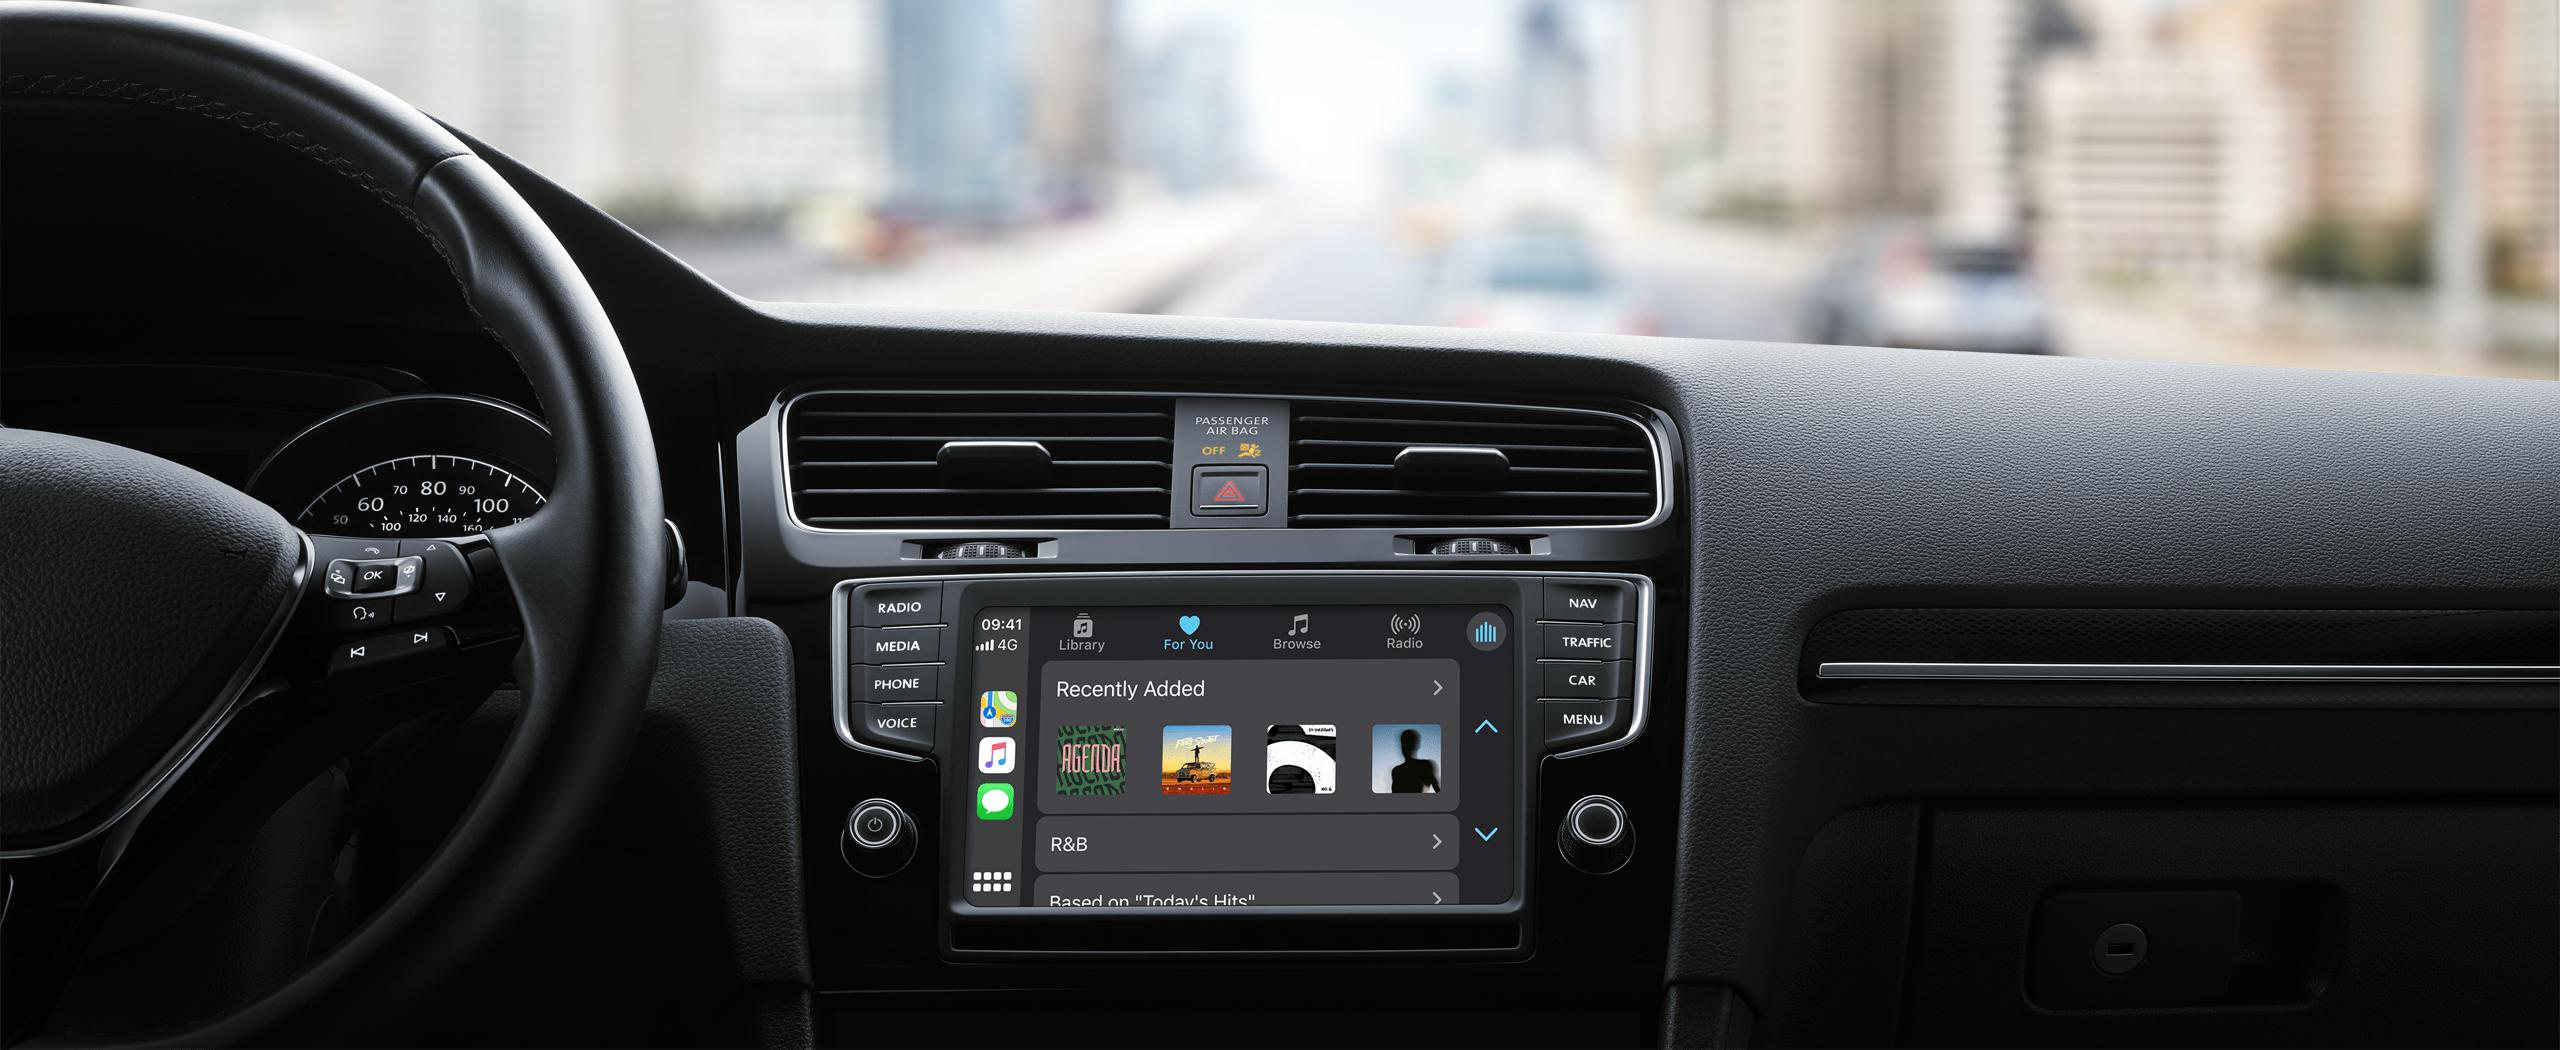 apple CarPlay music